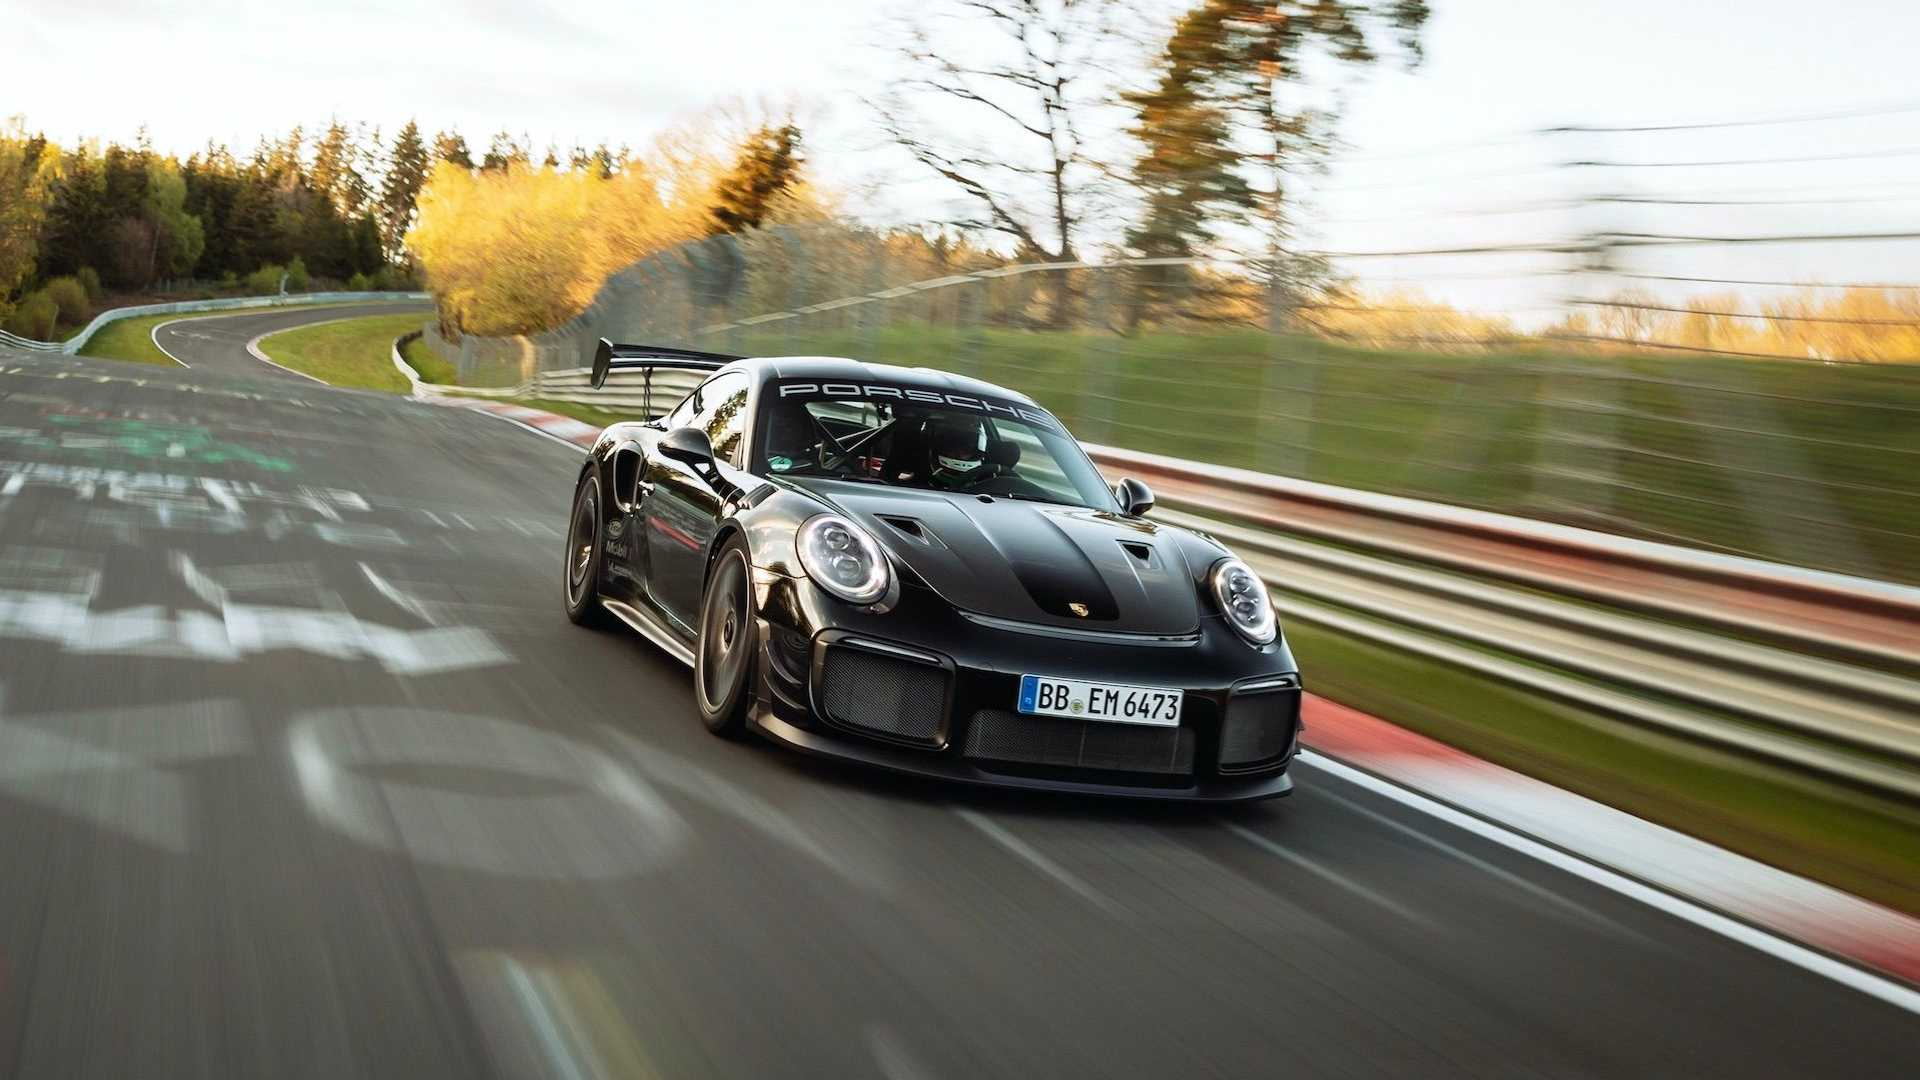 Porsche-911-GT2-RS-Manthey-Performance-Kit-Nurburgring-Record-28